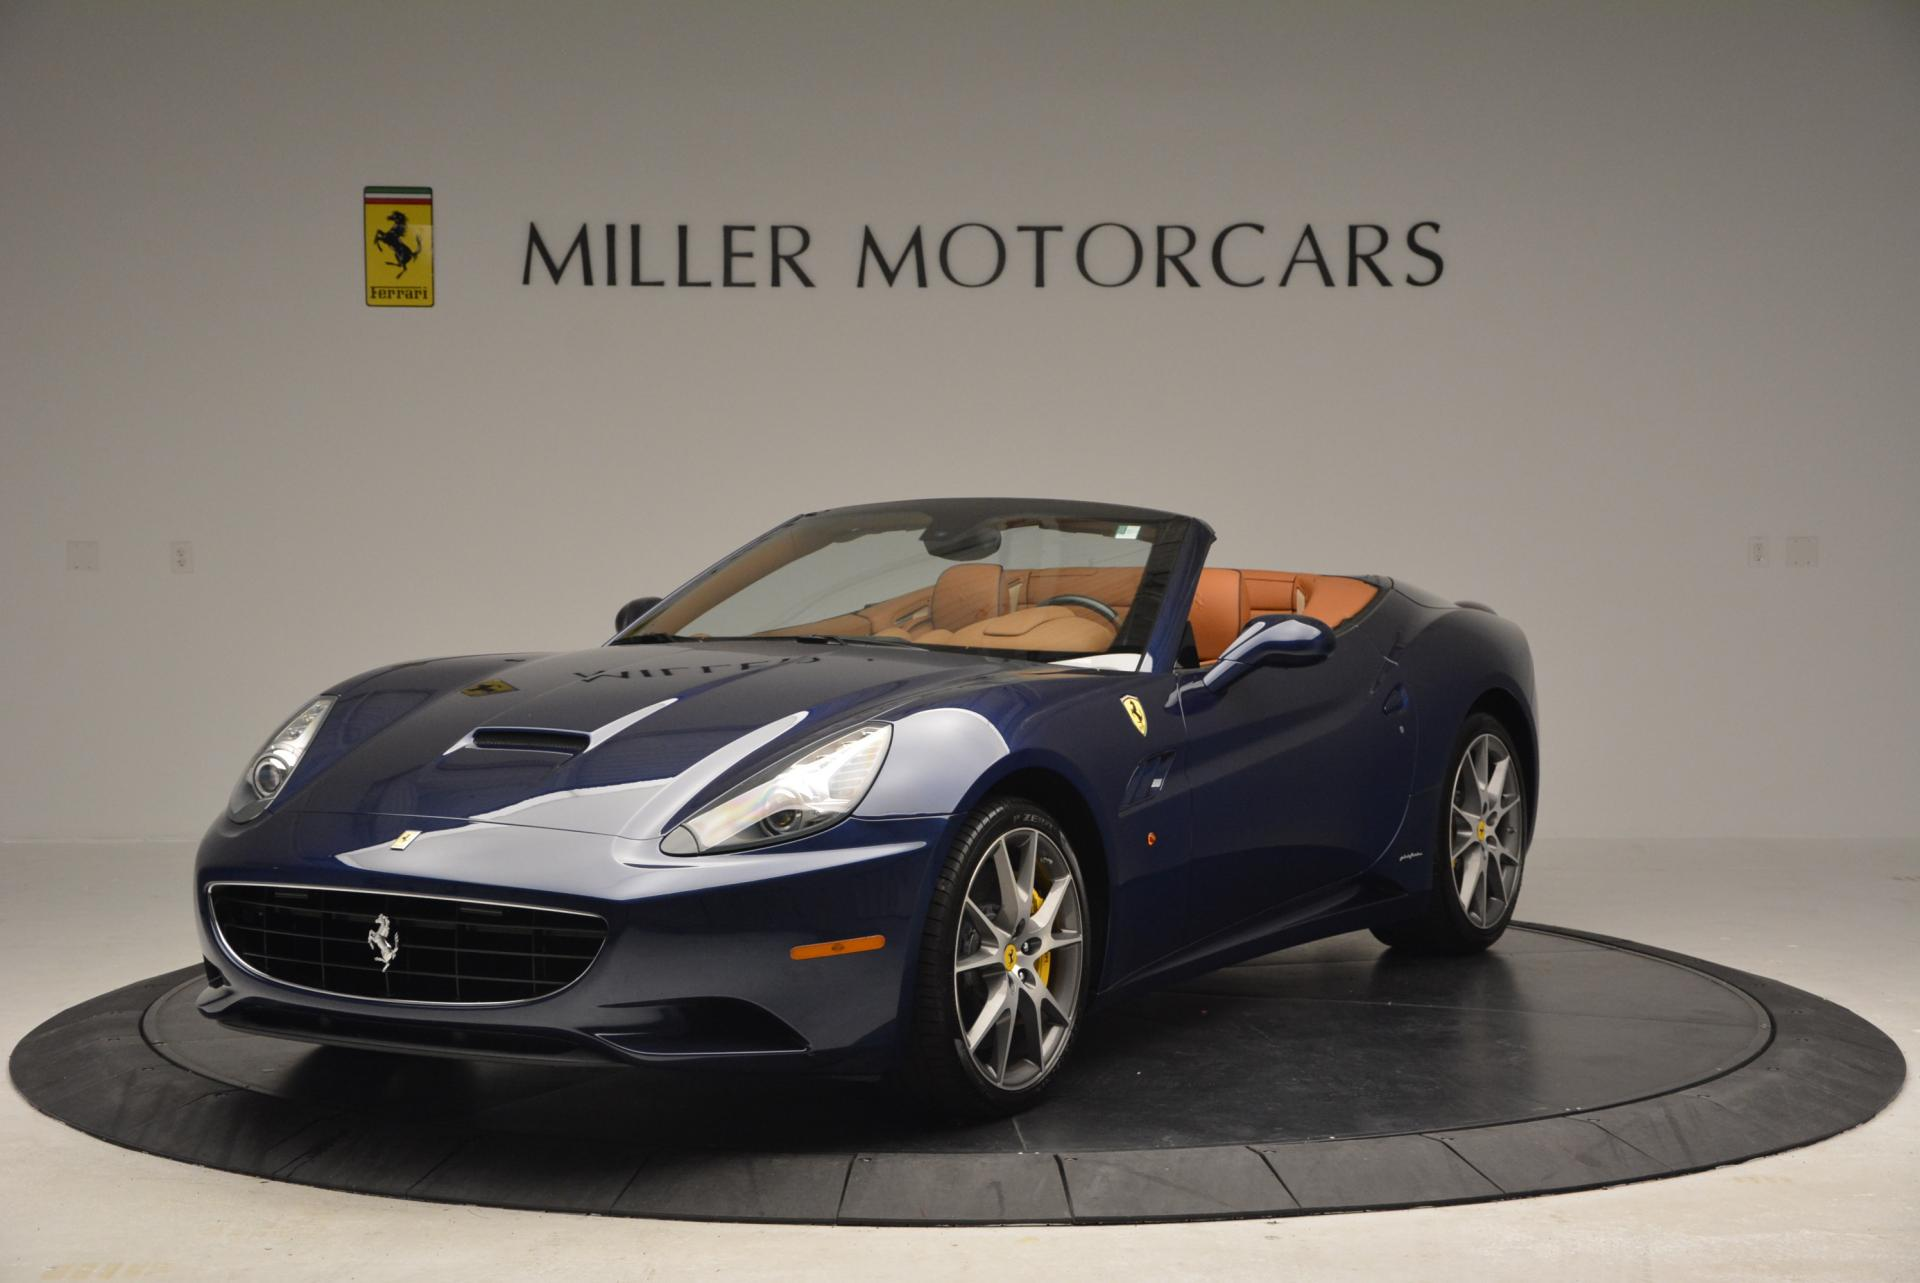 Used 2010 Ferrari California for sale Sold at Alfa Romeo of Greenwich in Greenwich CT 06830 1